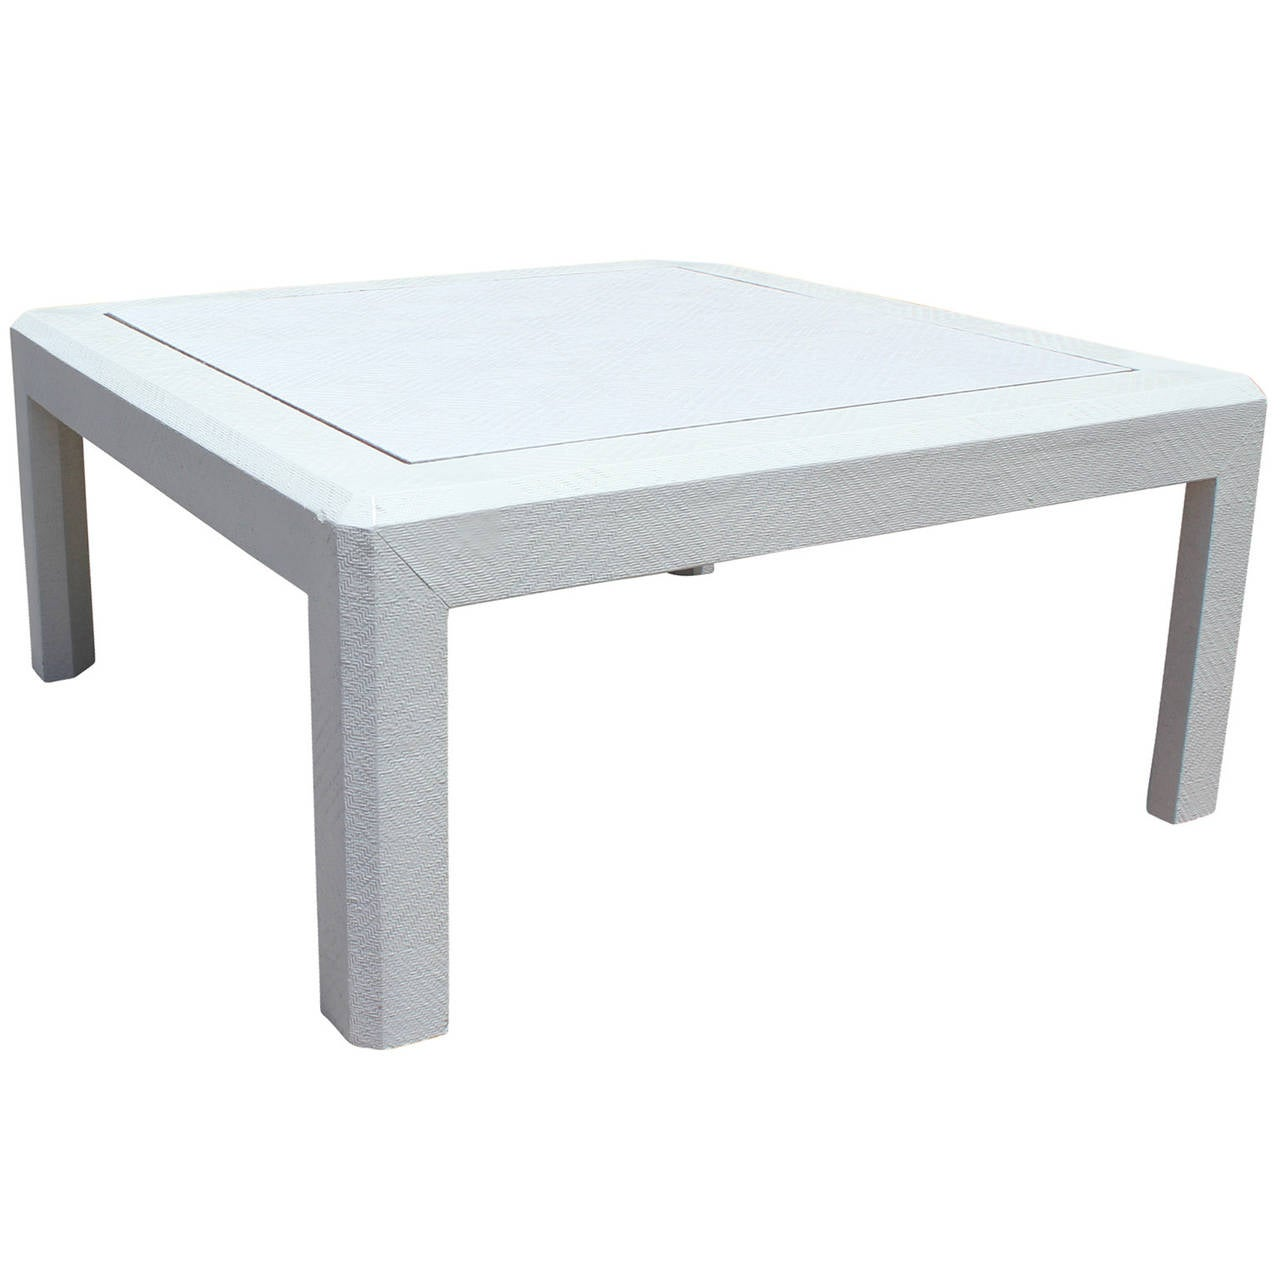 Coffee Table Stool Modern Harrison Van Horn Style Square White Lacquered Raffia